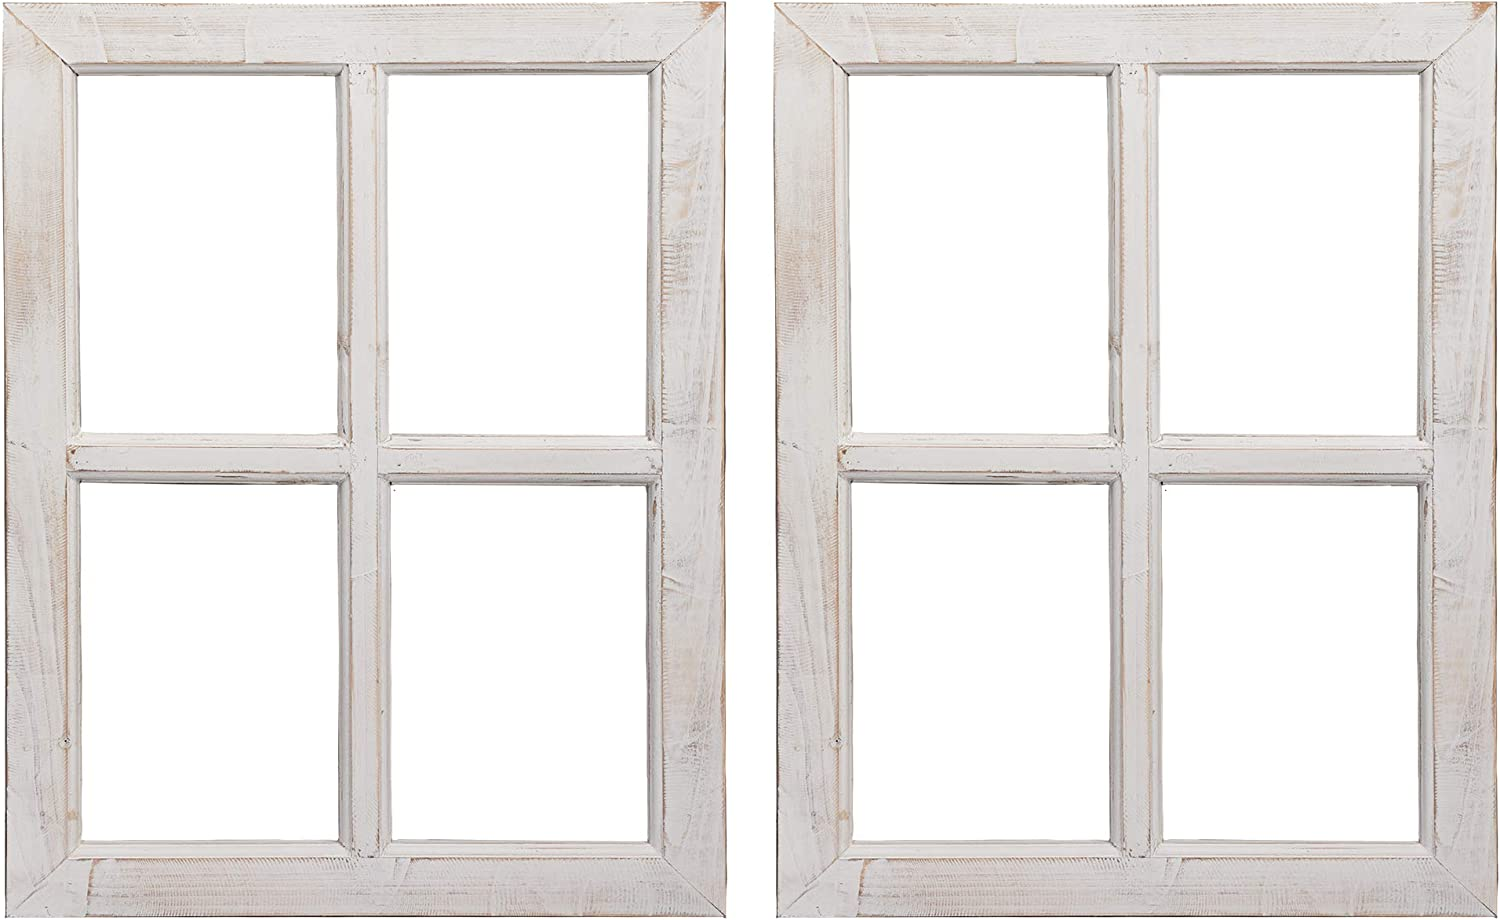 "Barnyard Designs Rustic White Barn Wood Window Frames, Decorative Country Farmhouse Home Wall Decor, Wooden Window Pane for Living Room, Bedroom, or Fireplace Mantel, 18"" x 24"", (2 Pack)"